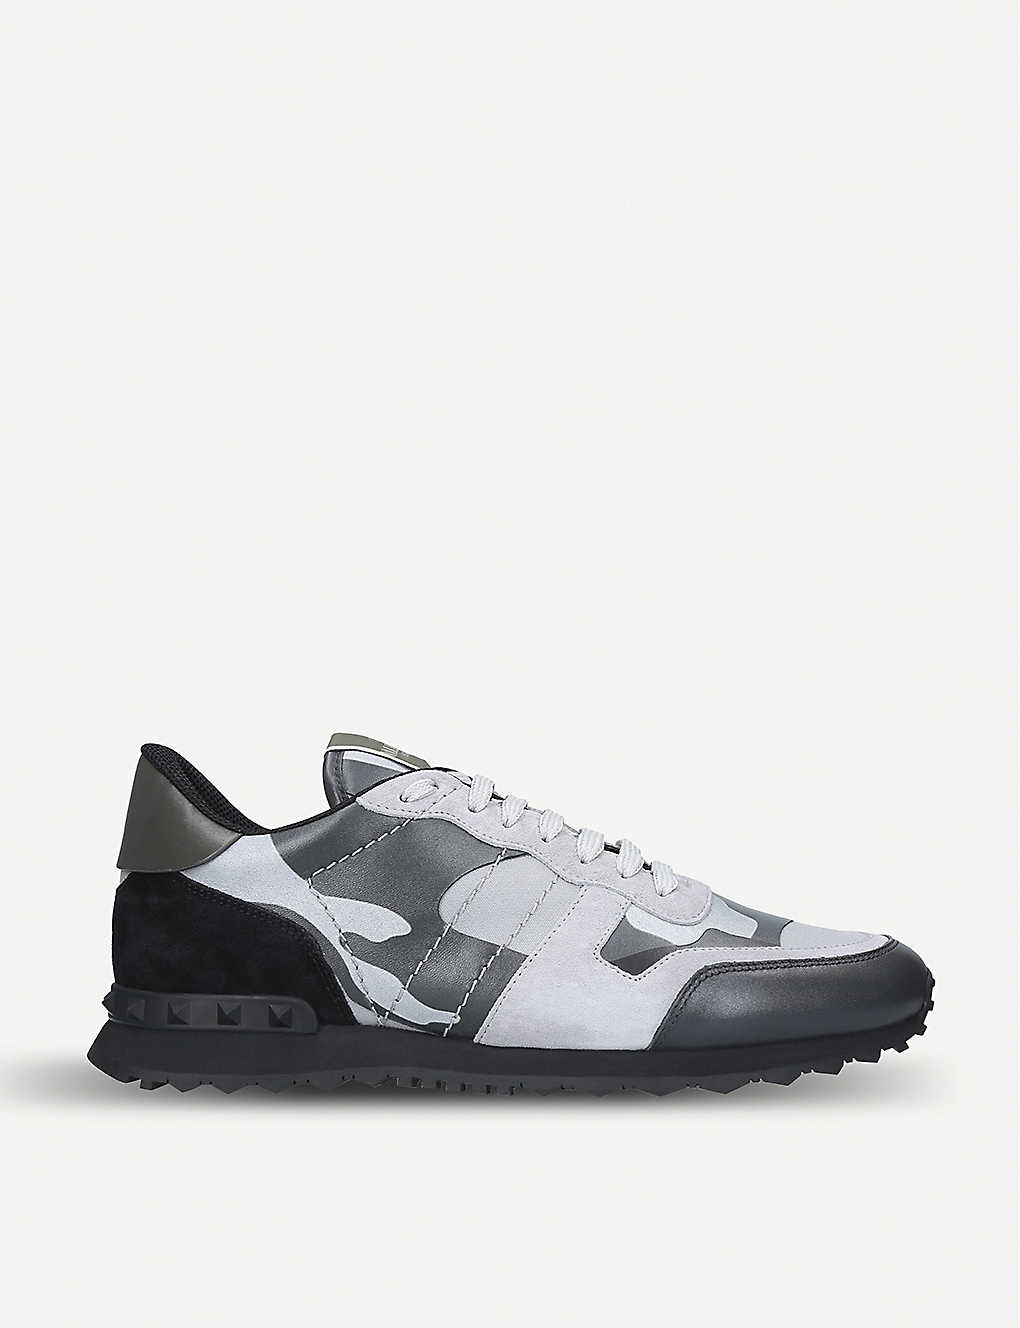 803481ac77e95 VALENTINO - Rockrunner suede and leather trainers | Selfridges.com